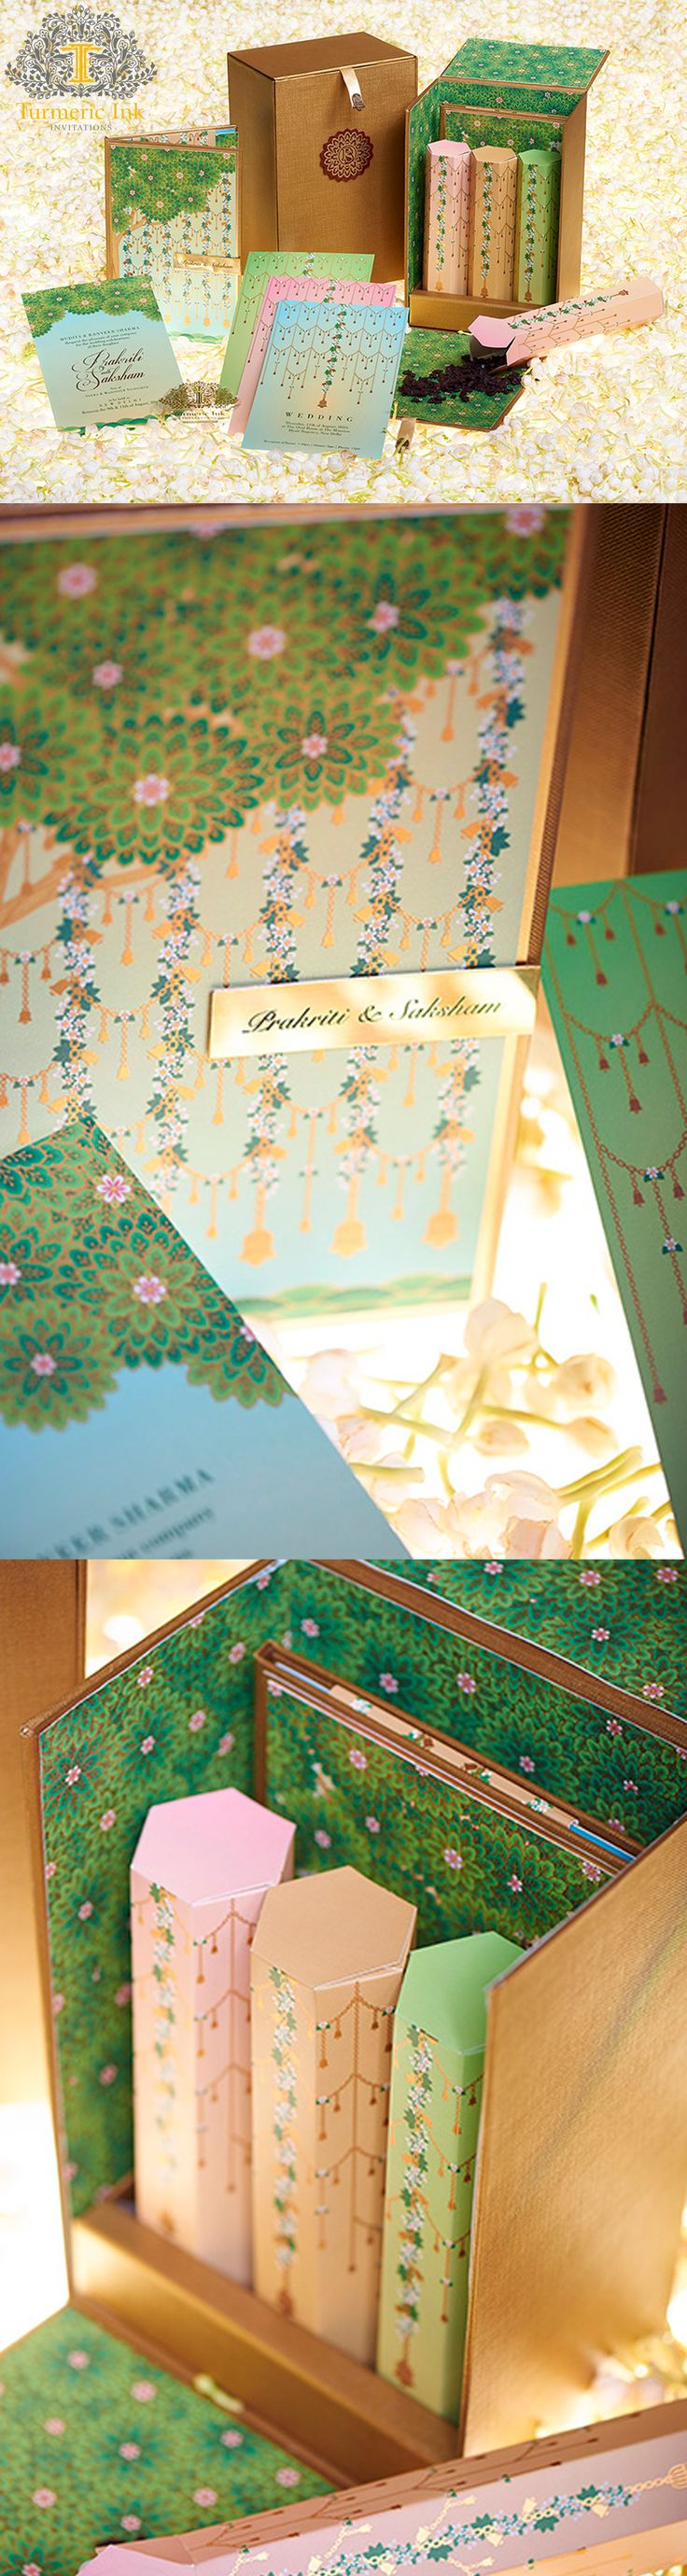 wedding card manufacturers in tamilnadu%0A invite  invitations  Indian wedding invite  wedding card  bride  indian  bride